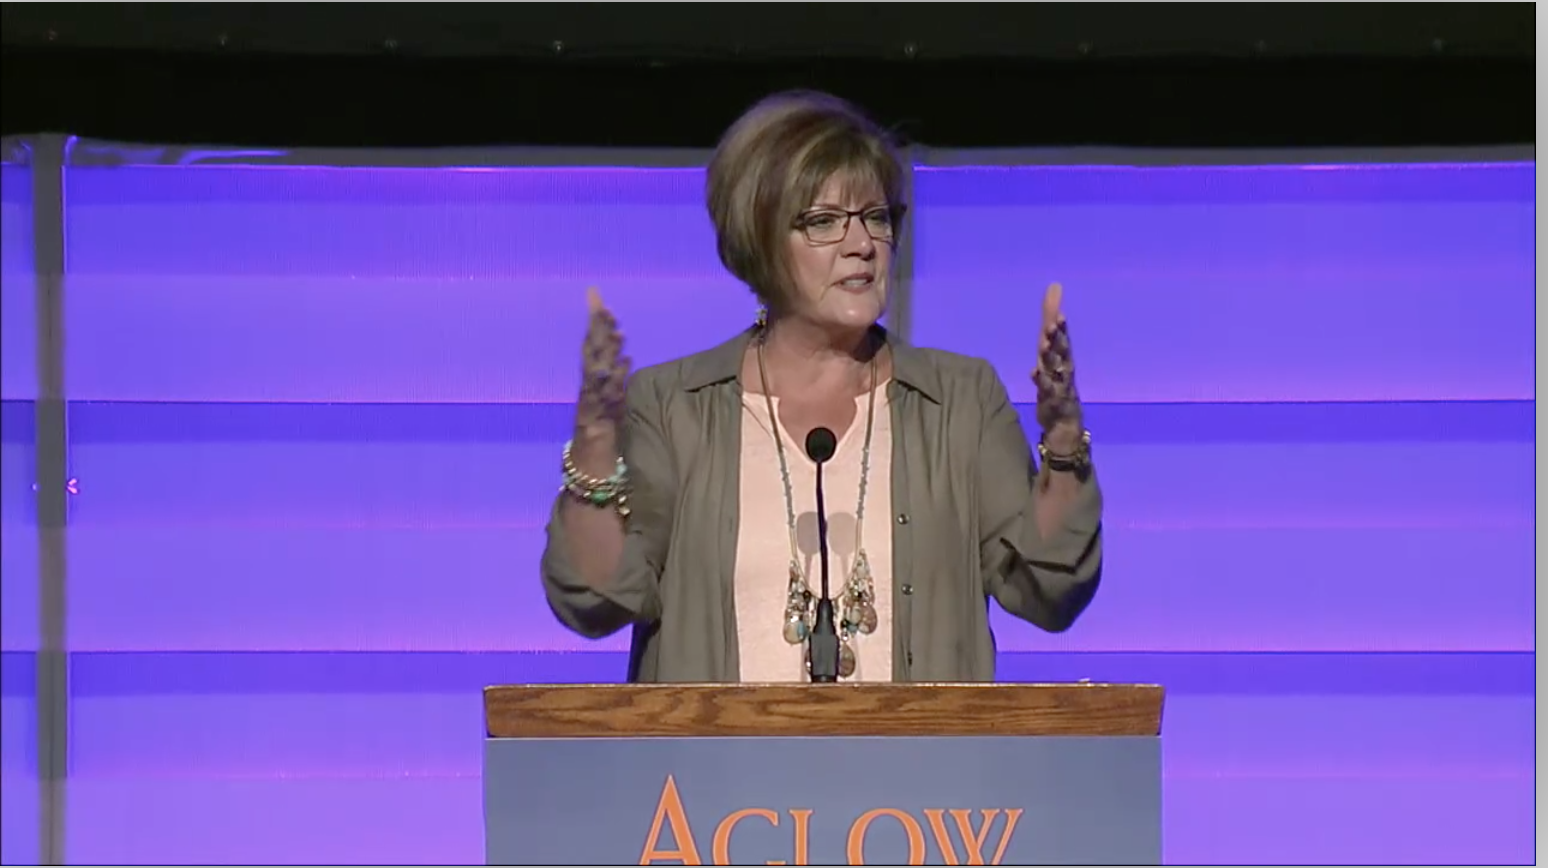 DIANE FINK PROPHETIC WORD FRIDAY AM SESSION - AGLOW US NATIONAL CONFERENCE 2018 (Click picture for video)